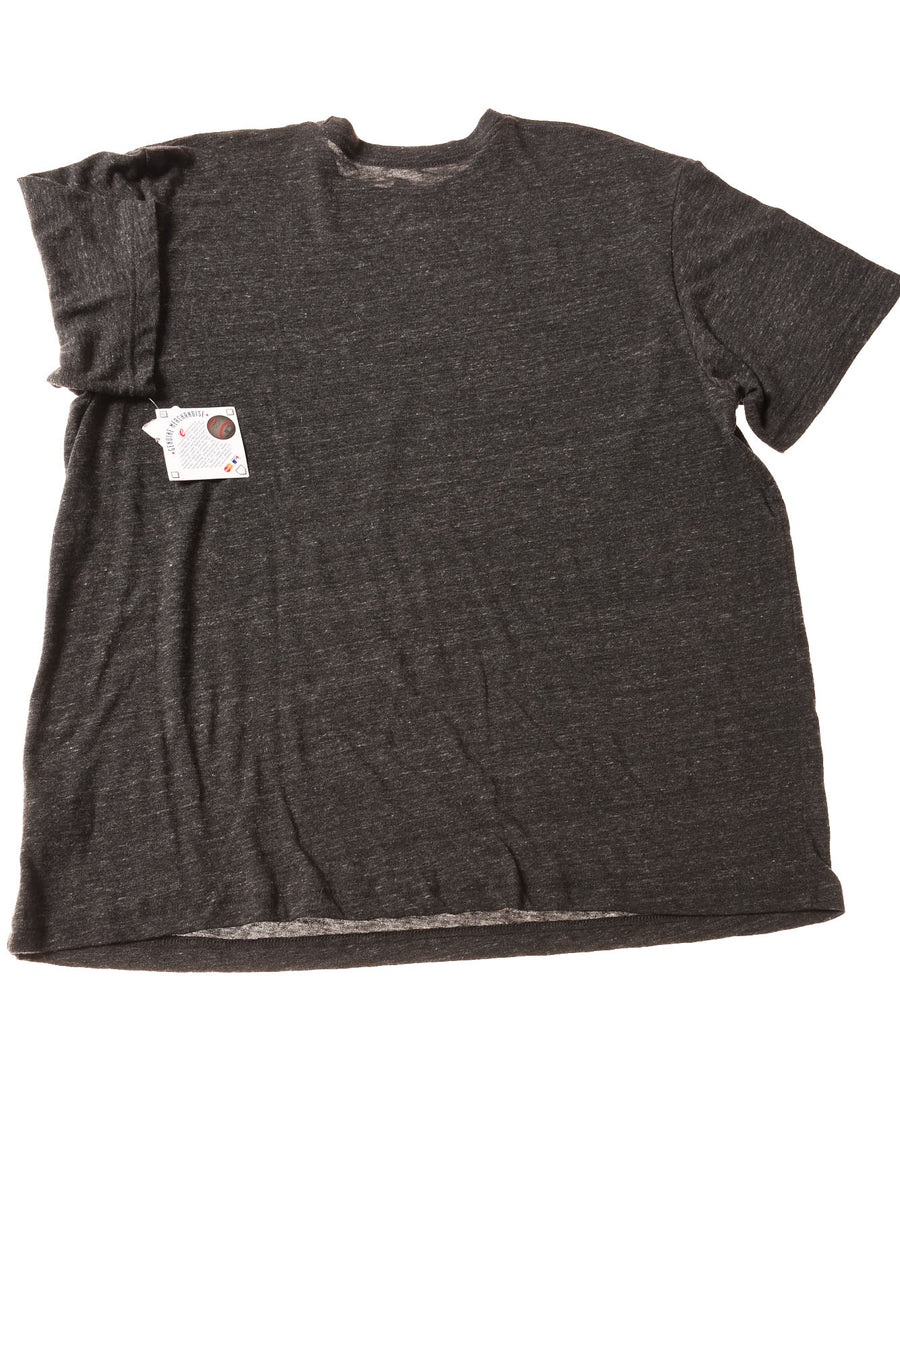 NEW Majestic Men's Shirt 2X Gray